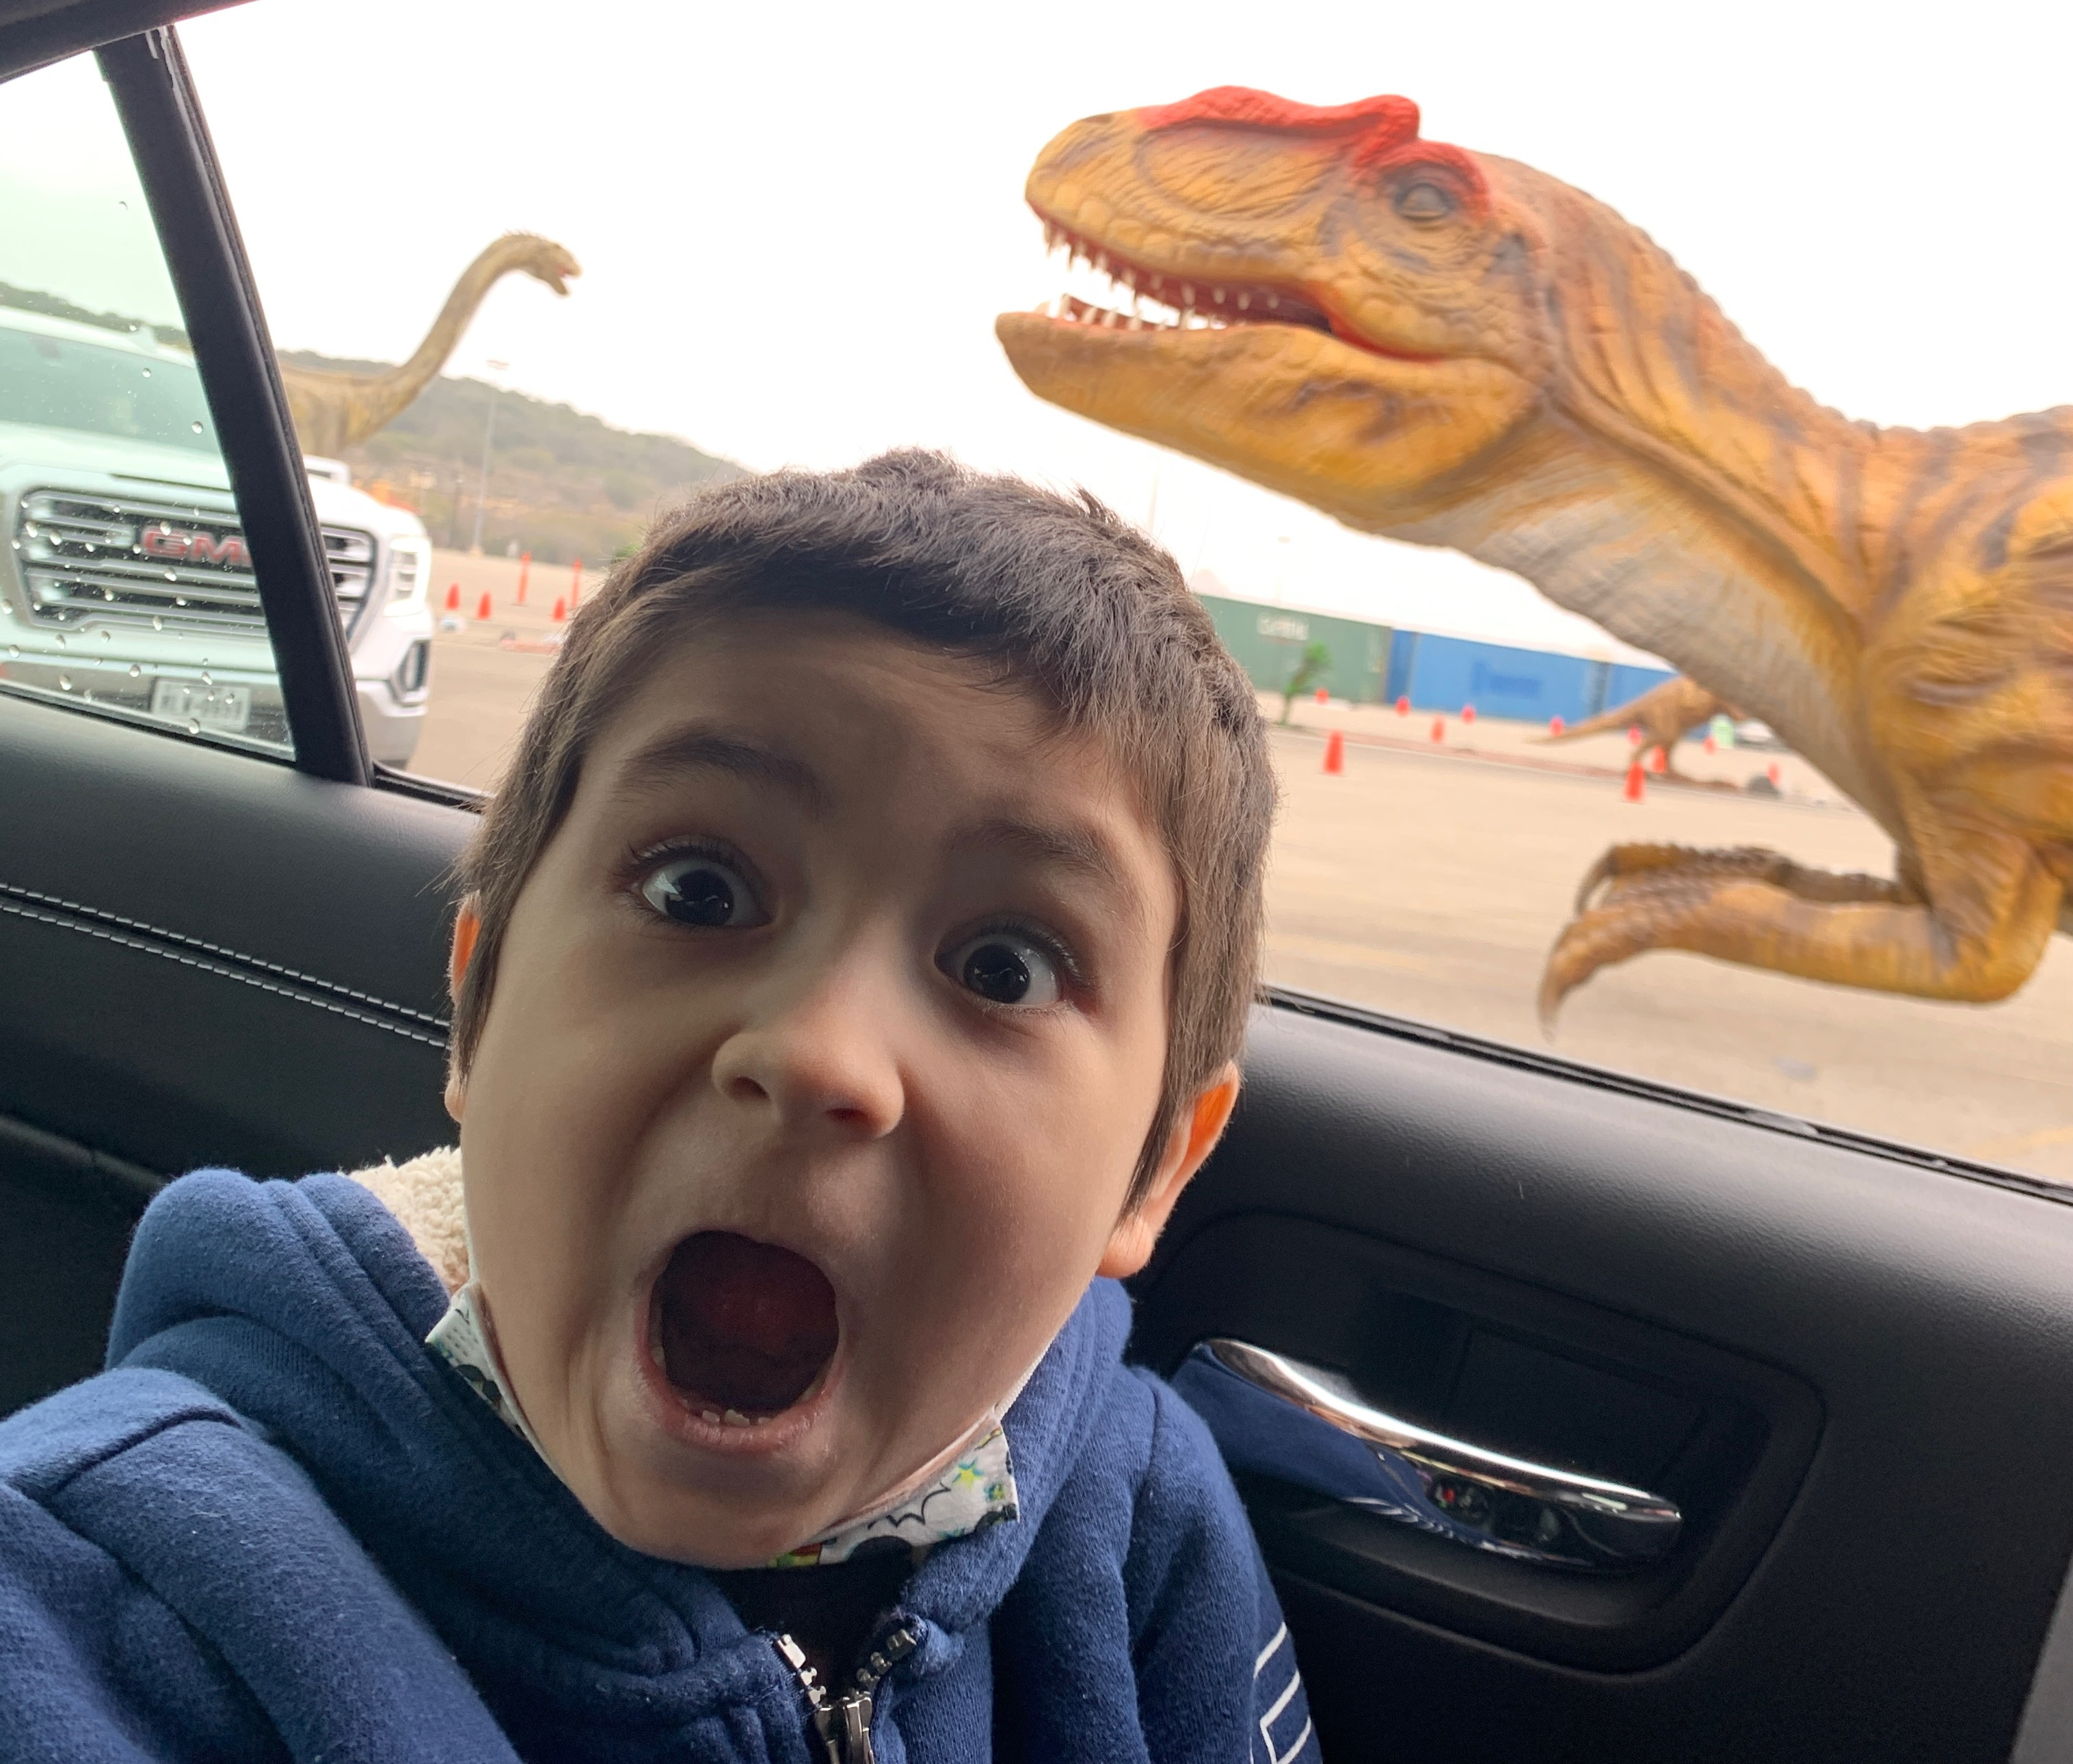 Dinosaur Drive-Thru: Family Adventures